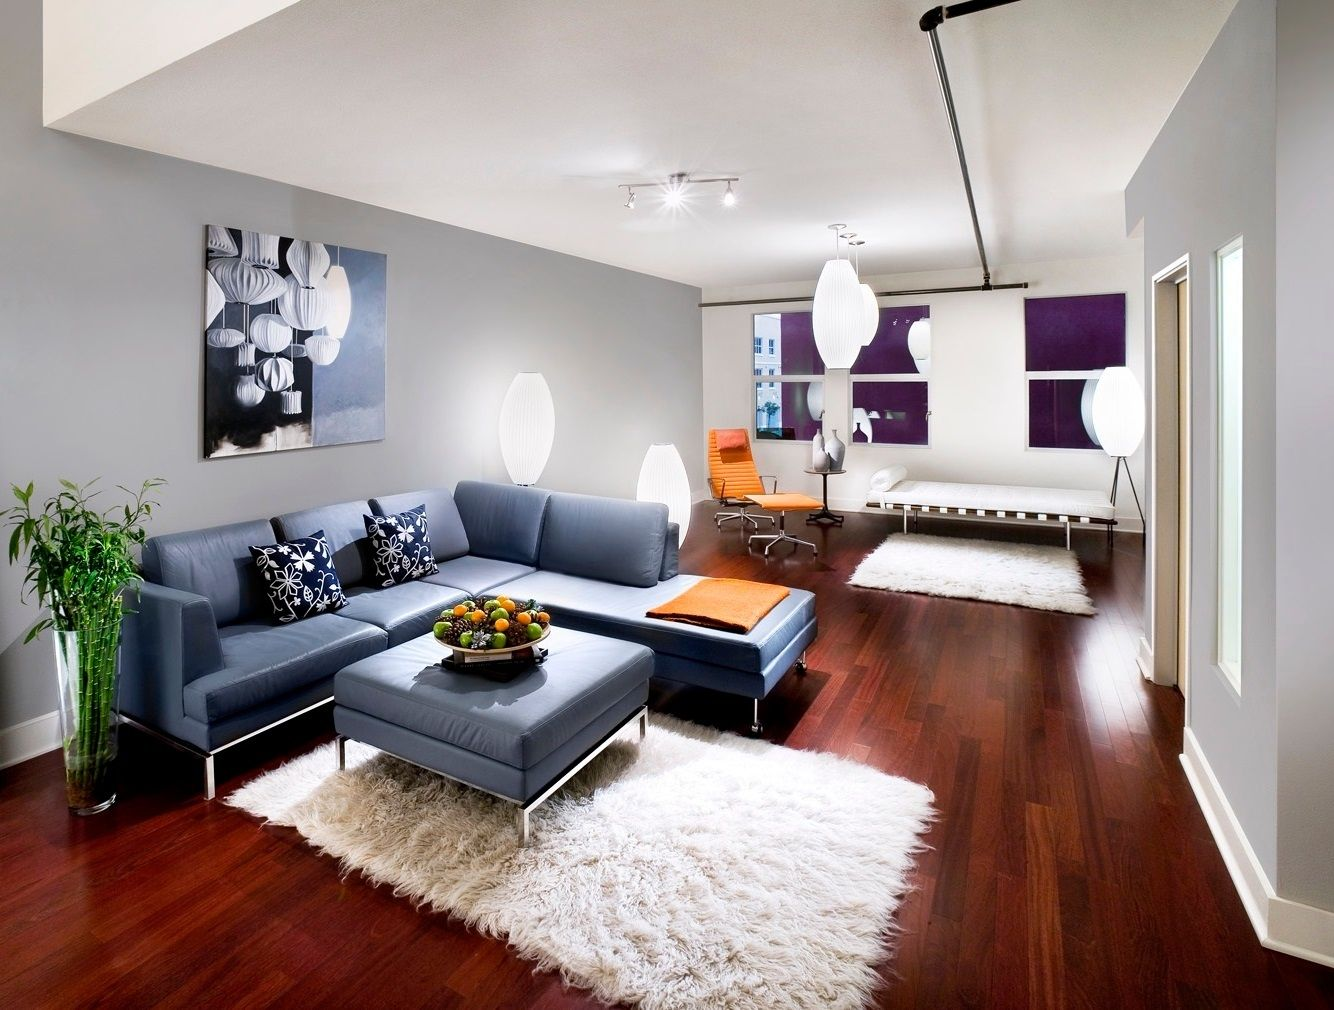 Apartment Living Room Design Ideas On A Budget Endearing Dont Overlook The Importance Of Home Staging  Homeowner Tips Inspiration